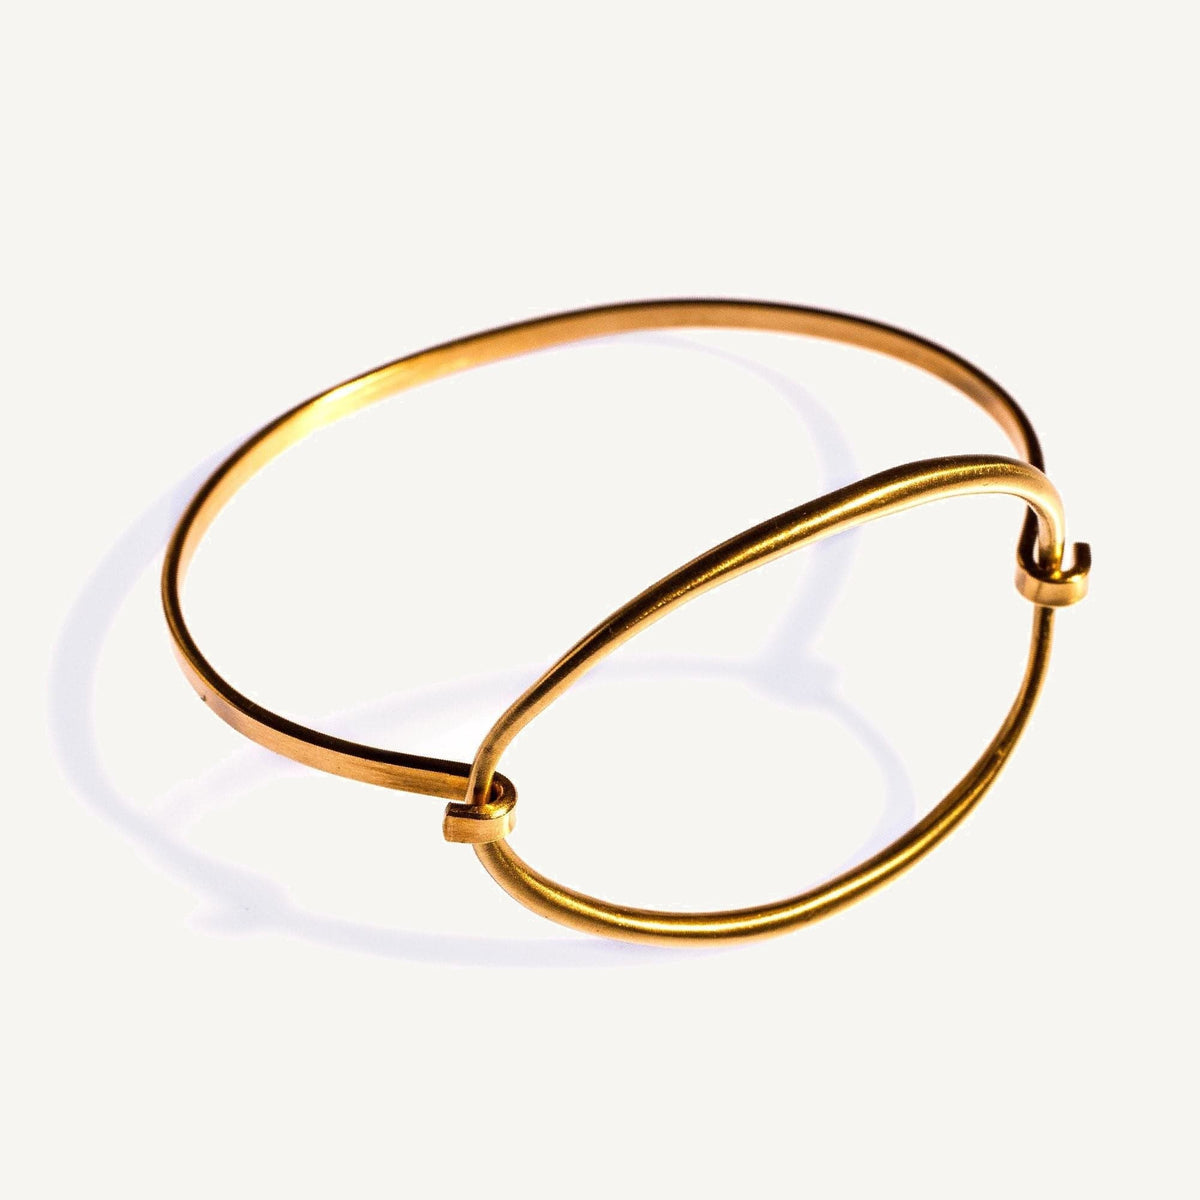 Convex Ellipse Tension Cuff Brass